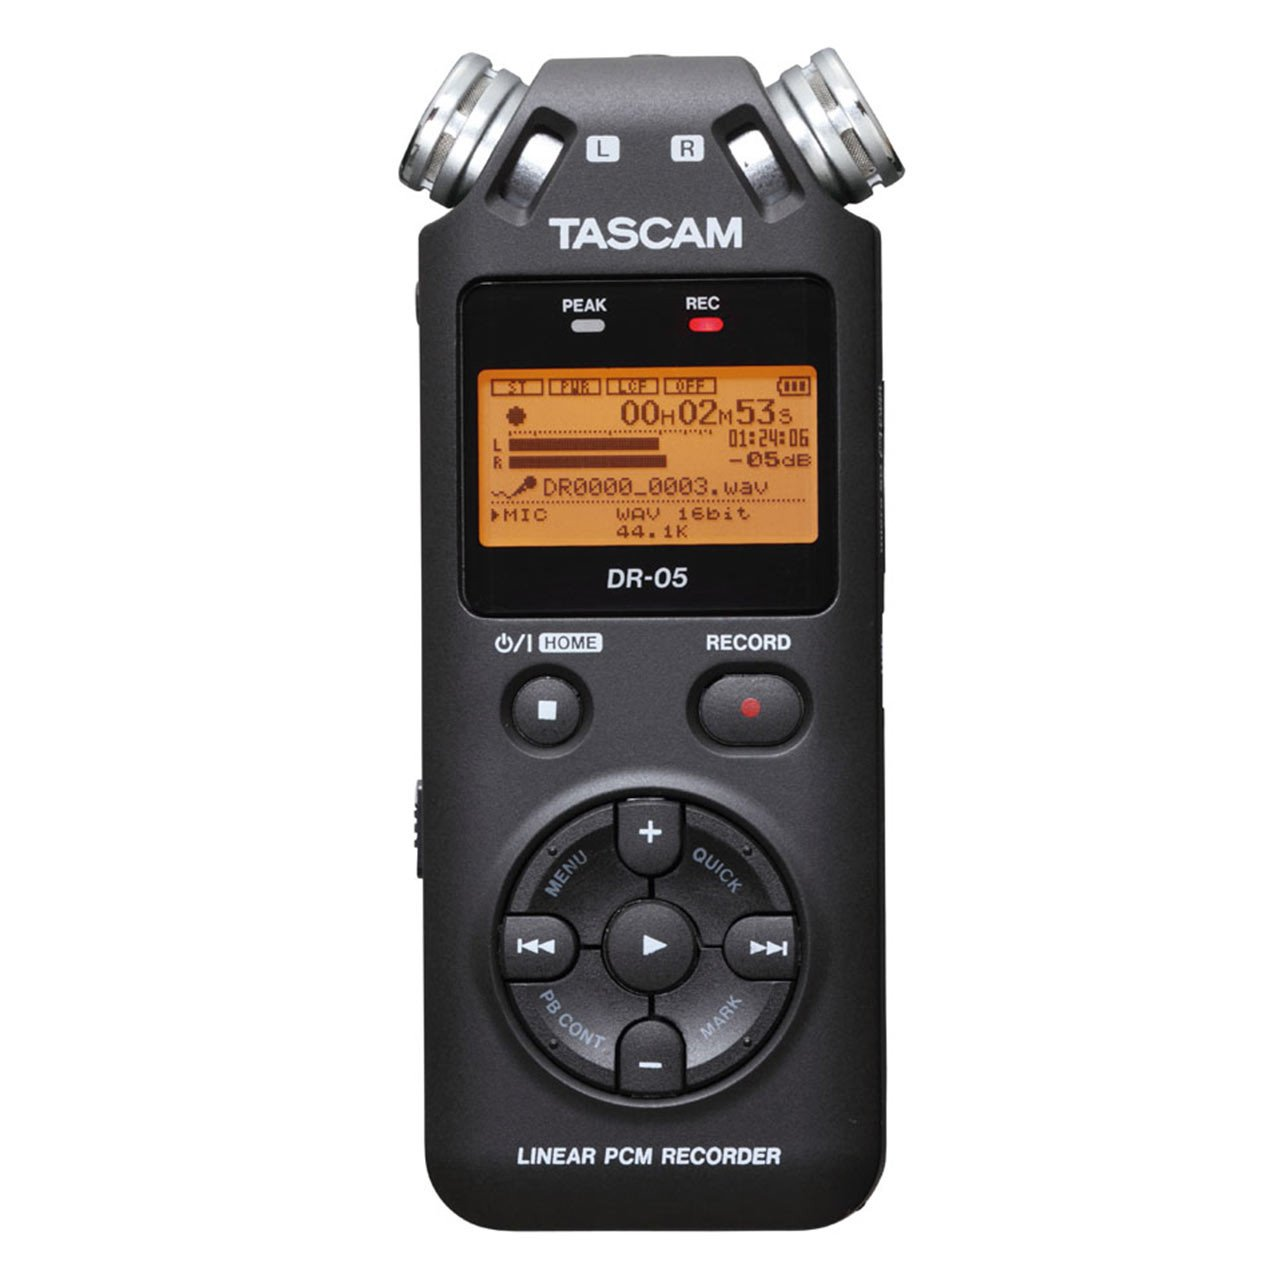 Portable Recorder - Tascam DR-05 Version 2 - Handheld Stereo Digital Recorder